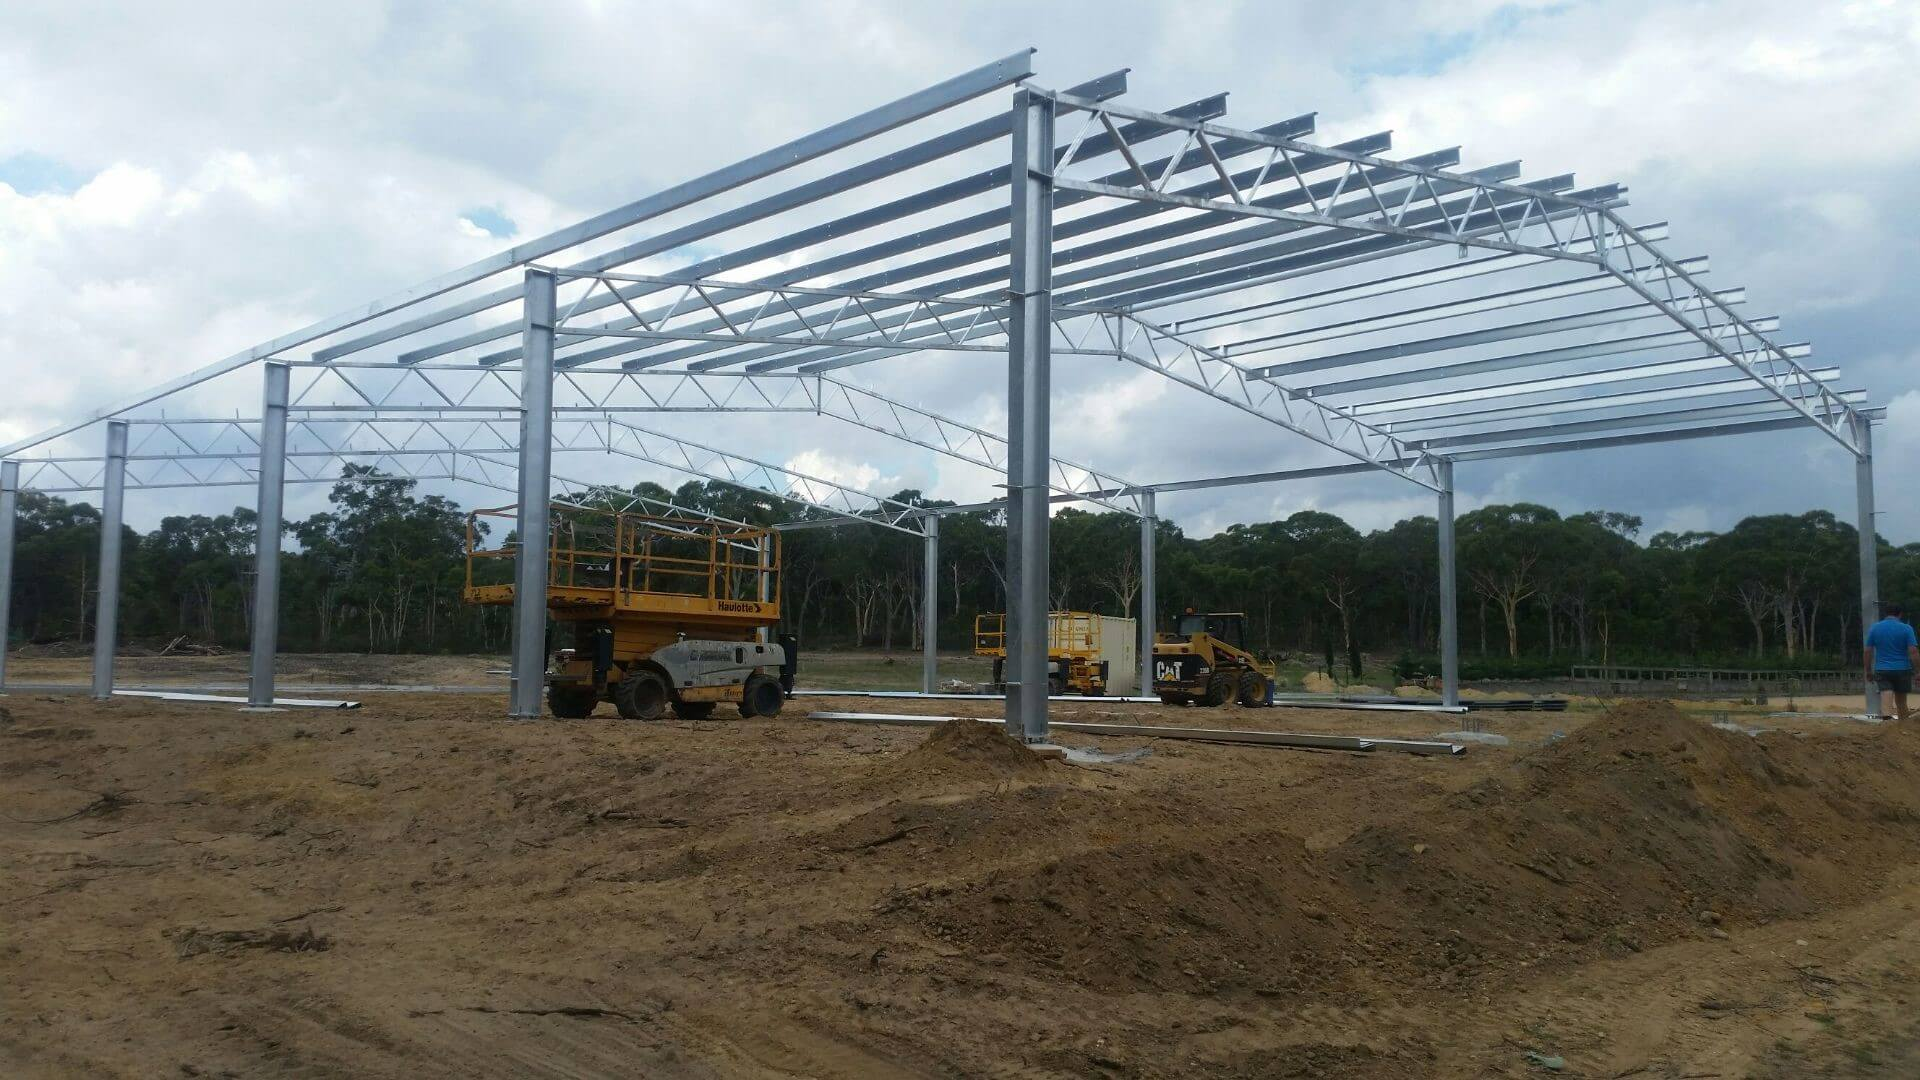 Structural steel horse arena being built in NSW